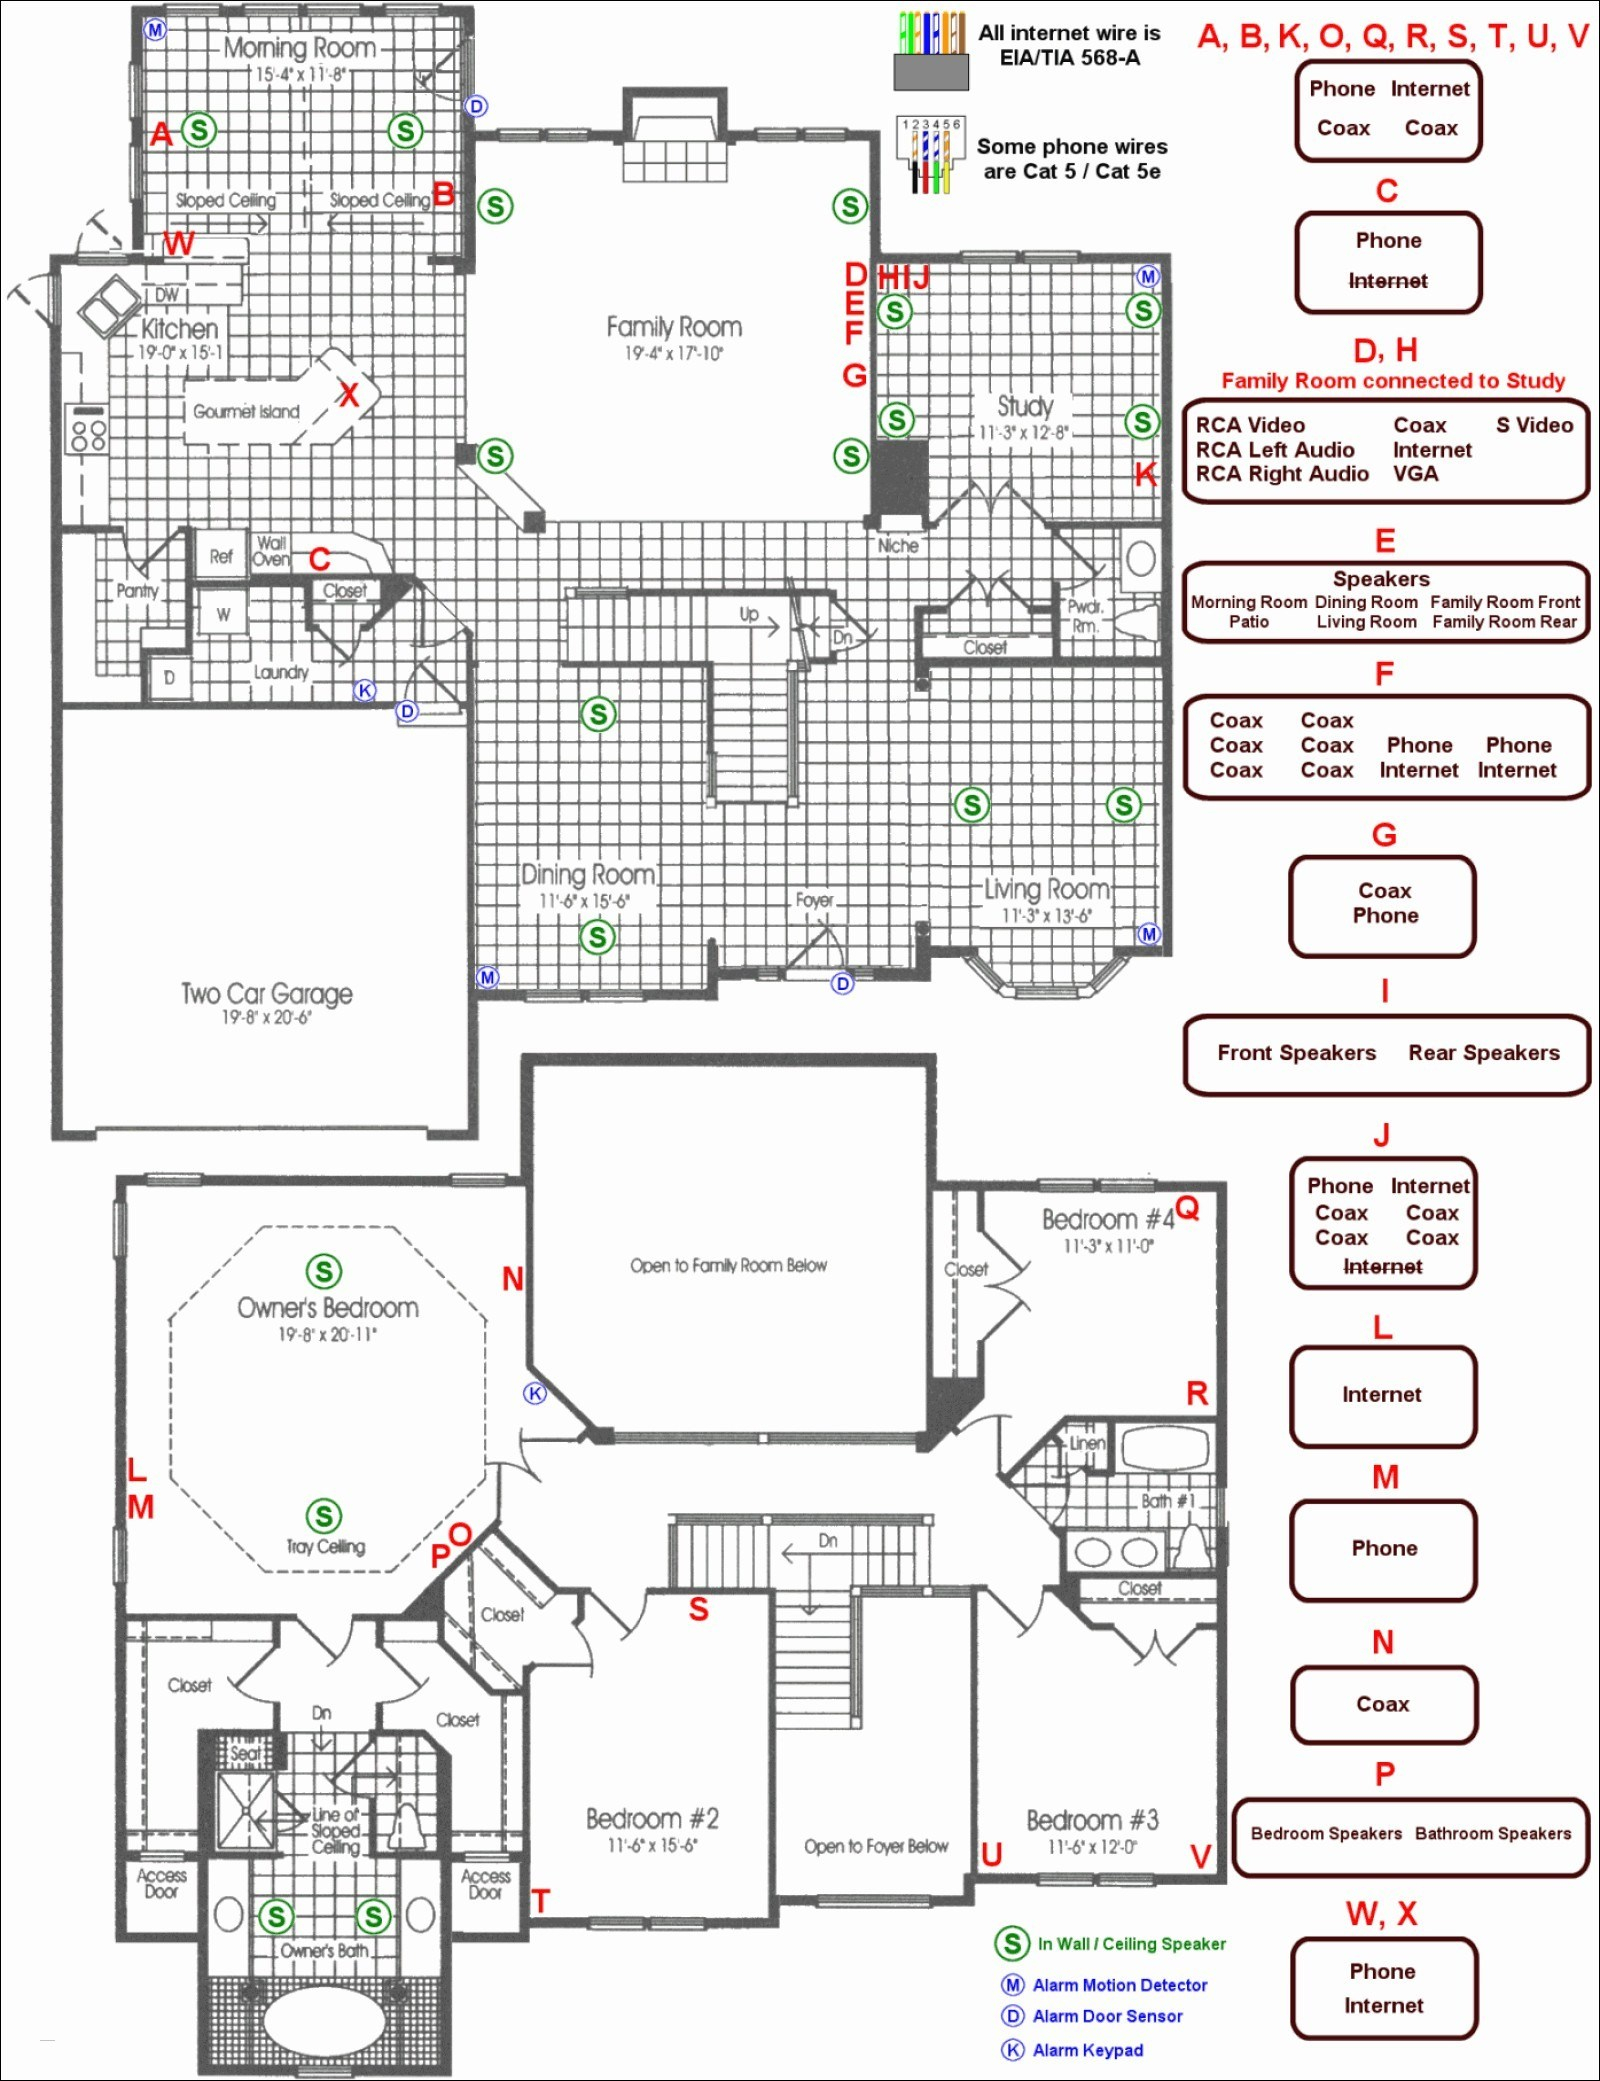 electrical house wiring diagram software free download Download-Wiring Diagram Detail Name electrical wiring diagram symbols – home 9-p